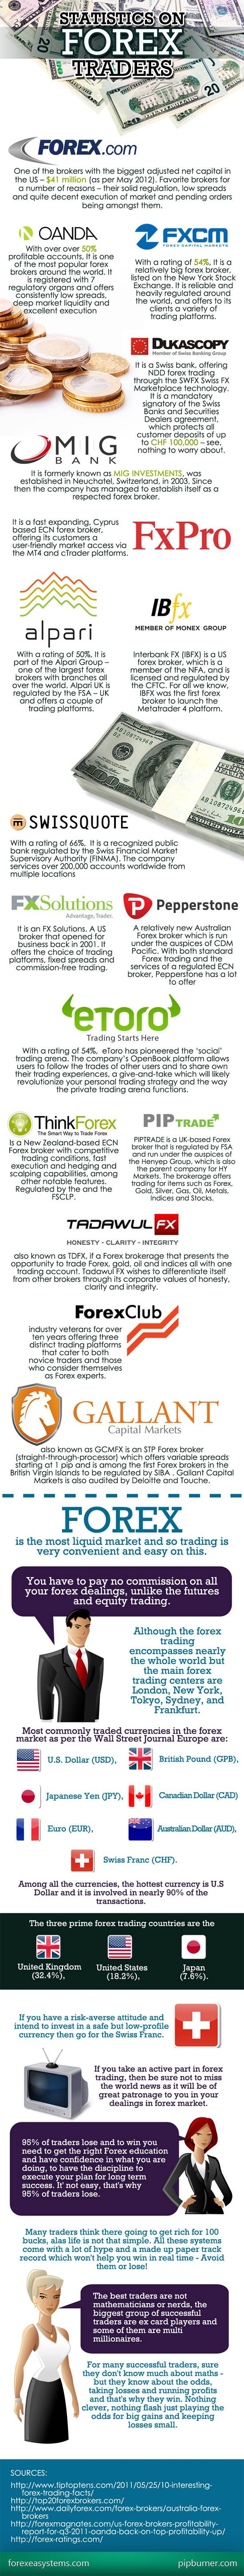 How Many Traders Are There What Currency Pairs They Trade And What Countries They Live More At Http Pipburner Com Forex Trading Trade Finance Forex Brokers